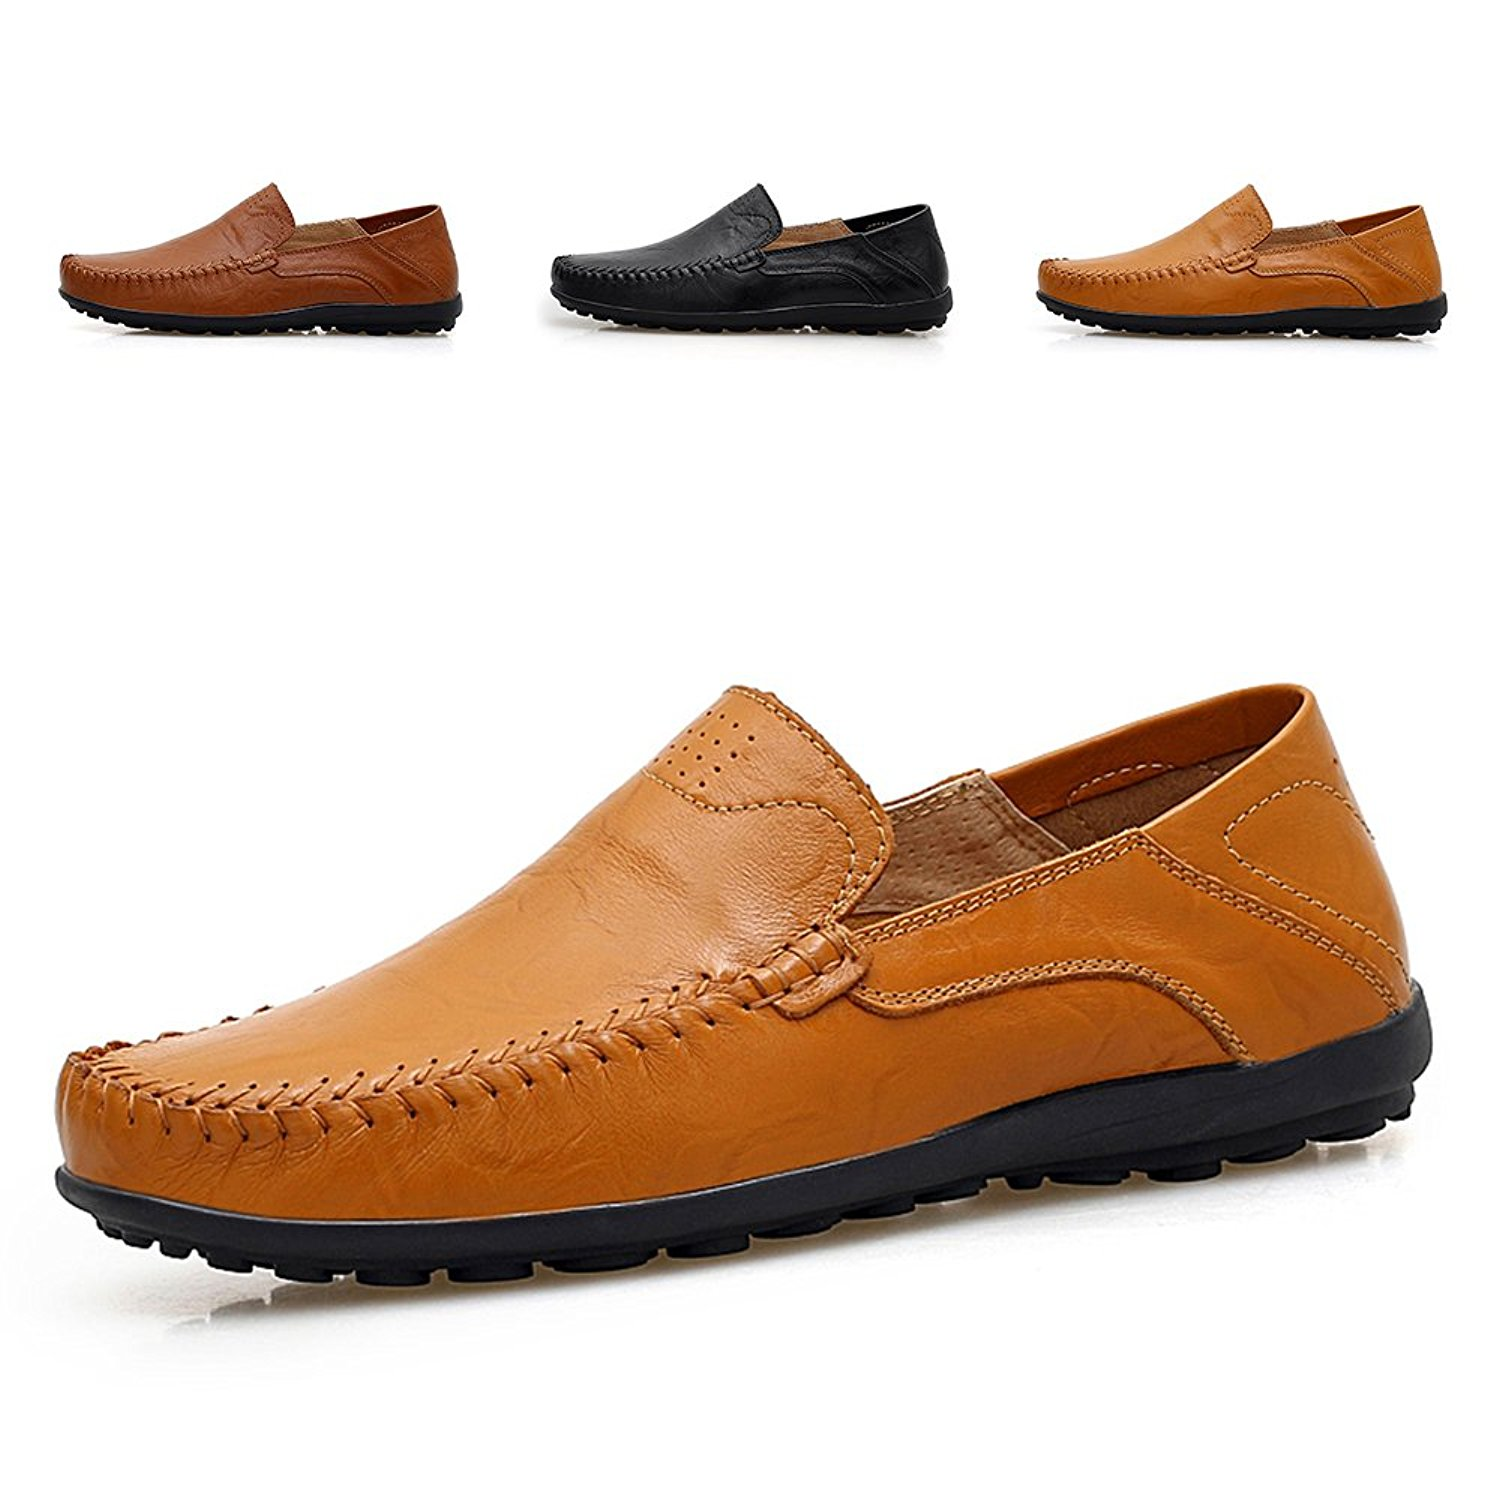 b5cbdbcee0 Get Quotations · ENLEN BANNA Breathable Men s Casual Shoes Leather Loafers  Men Slip-On Summer Boat Shoes Flats Shoes